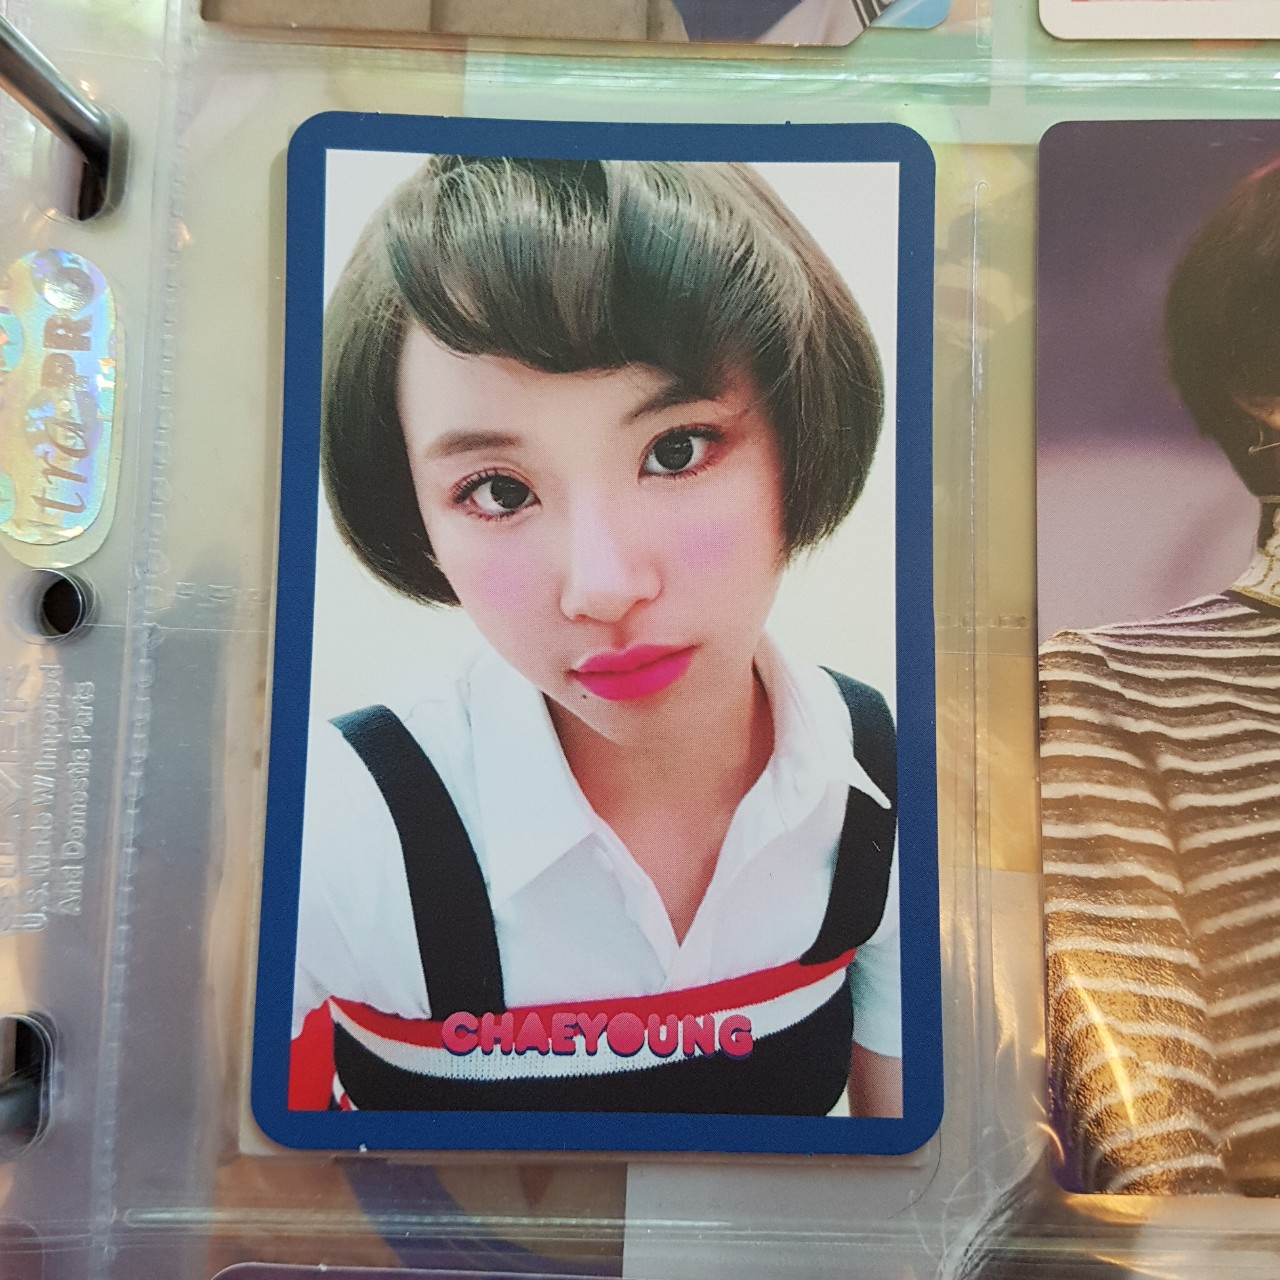 ♡Twice Chaeyoung 'Signal' Official Photocard♡ •In    - Depop